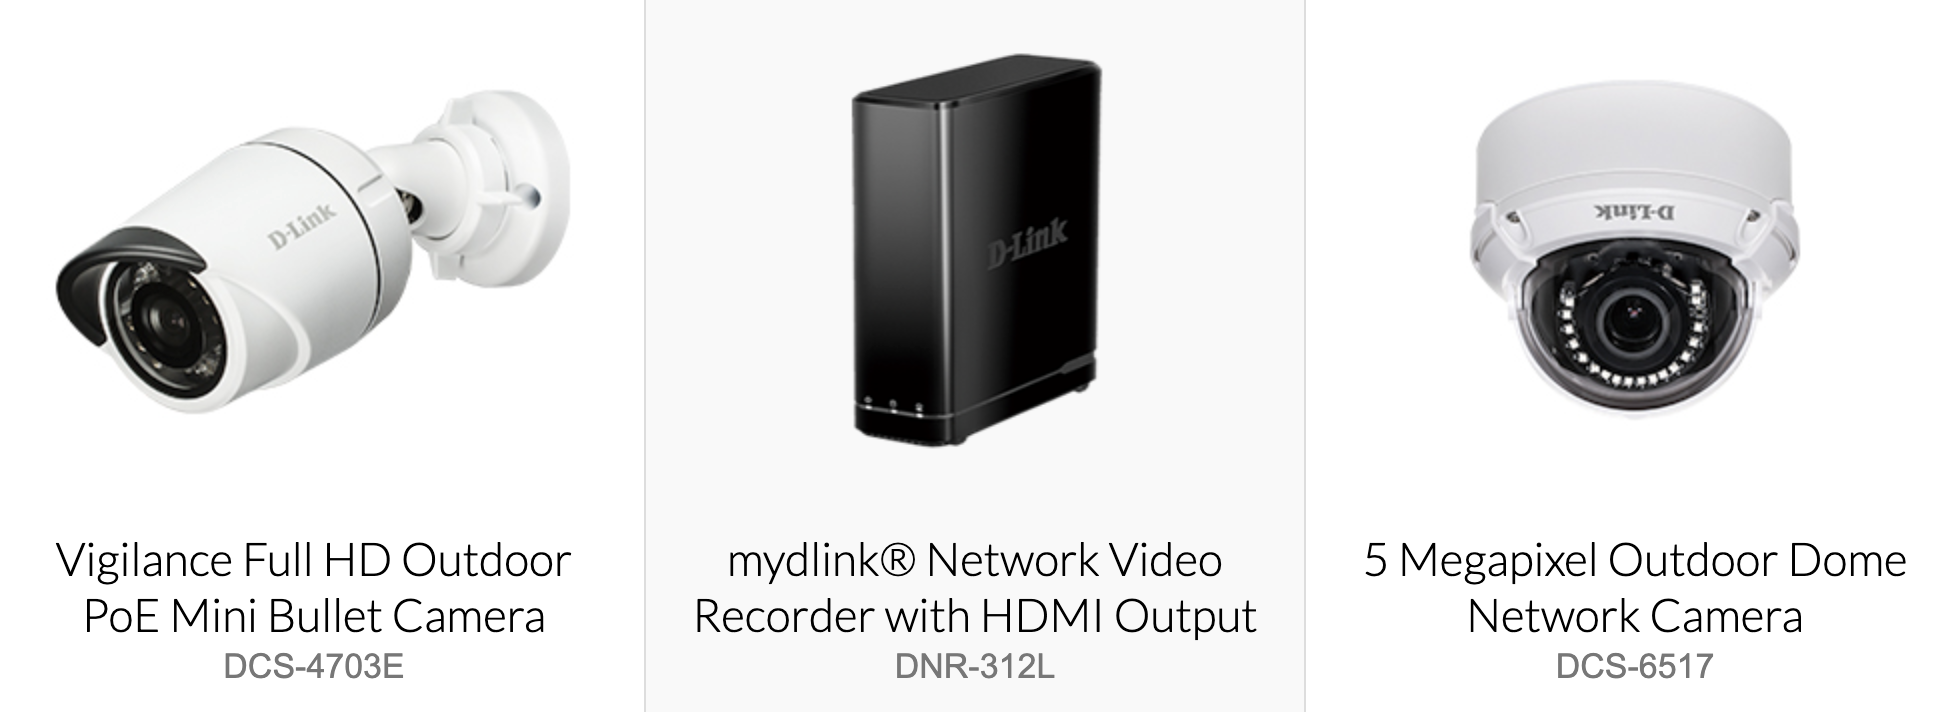 D-Link Products